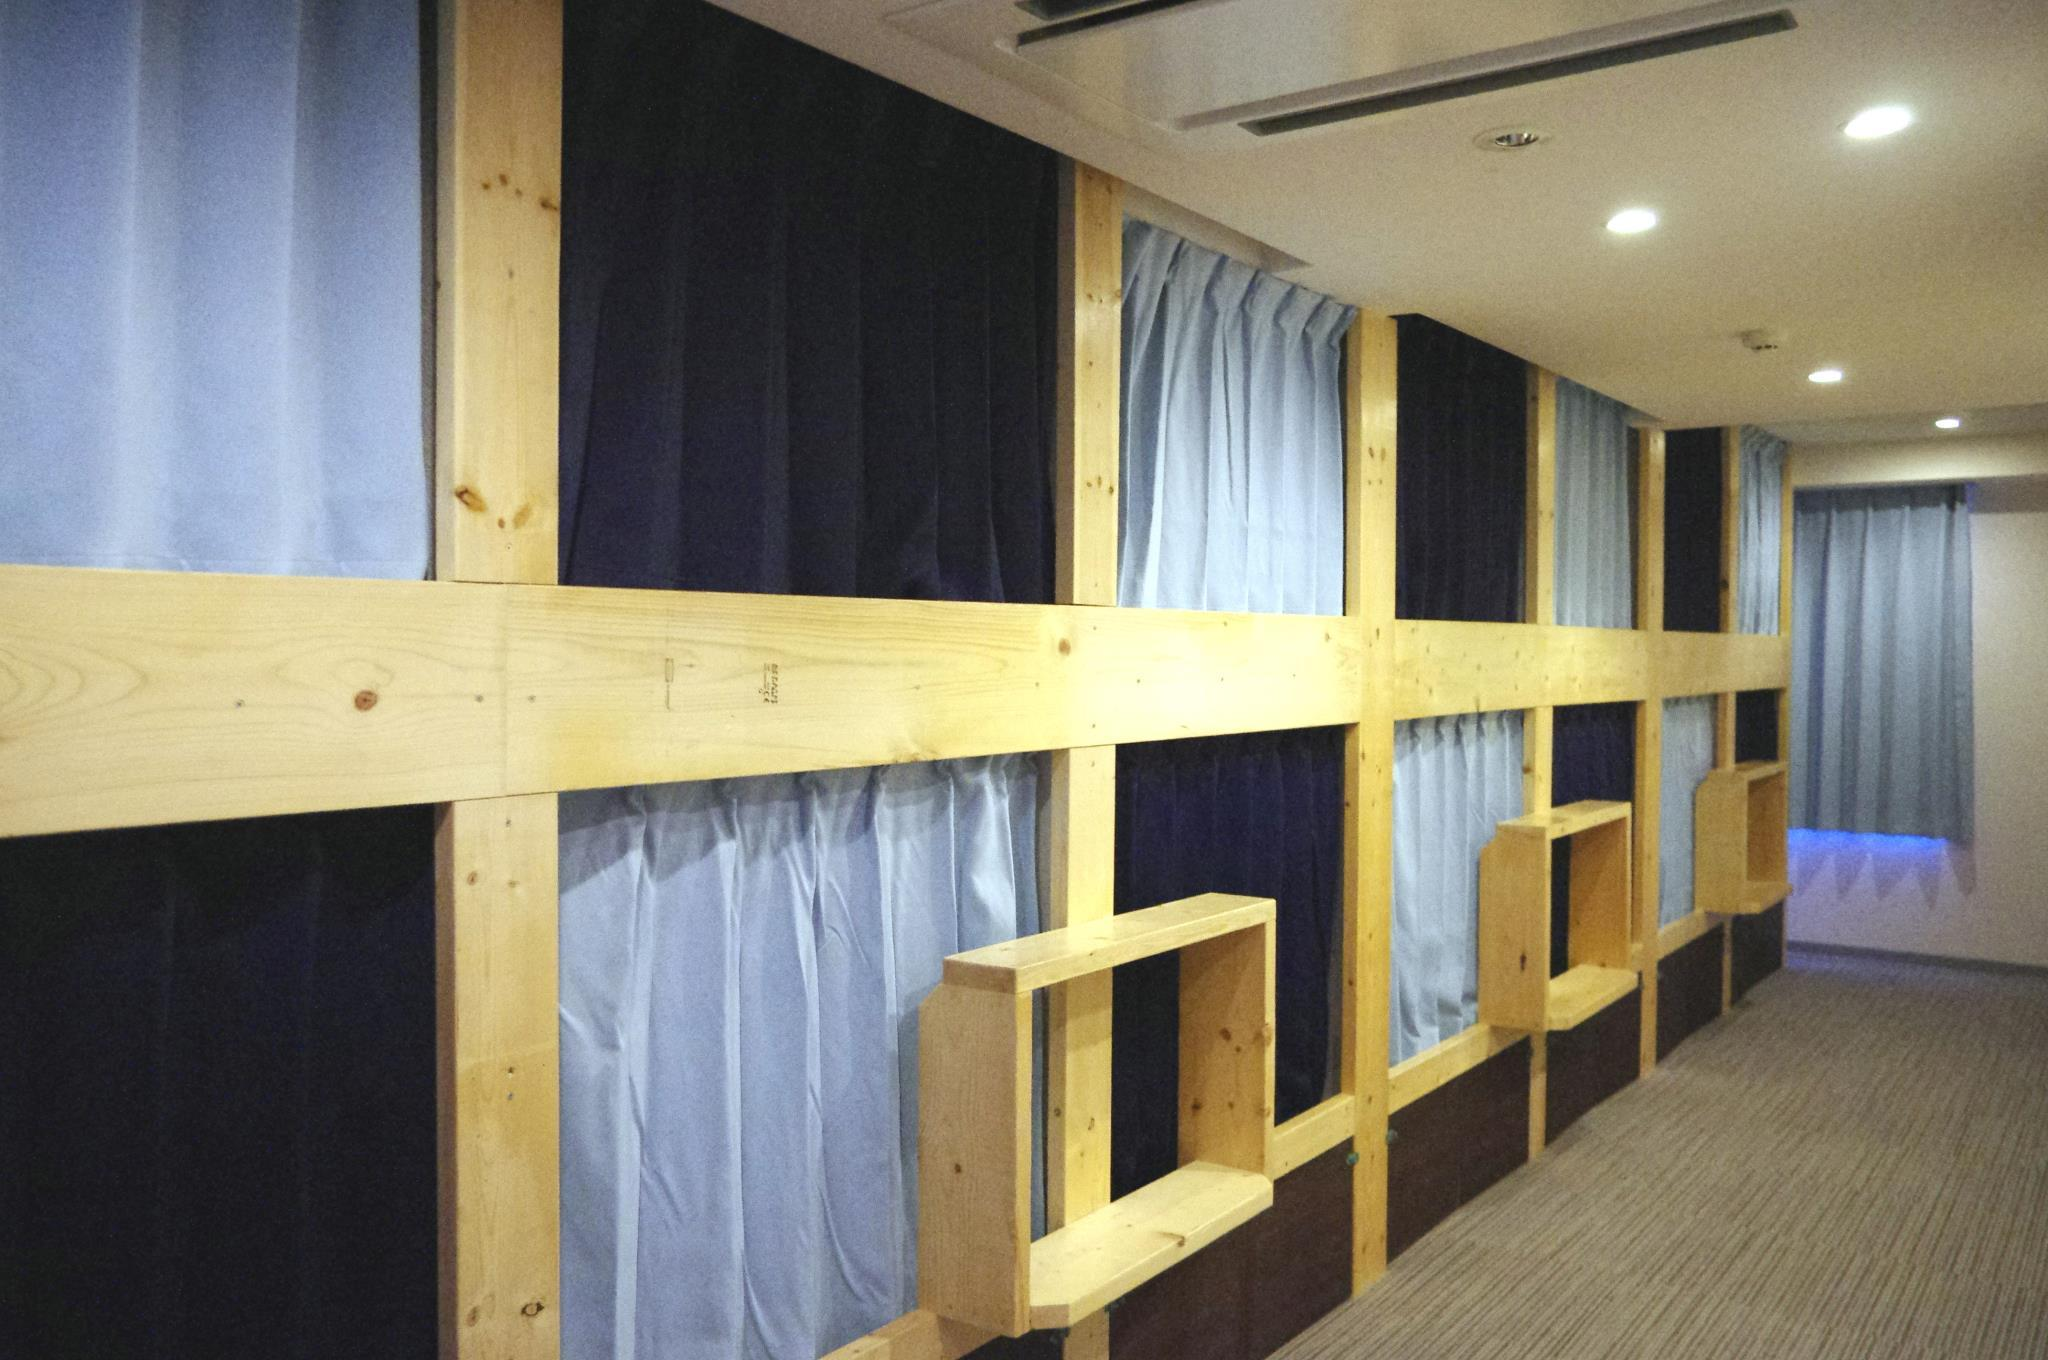 2 캡슐베드 도미토리 (혼성, 금연) (2-Capsule Bed Dormitory -- Mixed, Non-Smoking)